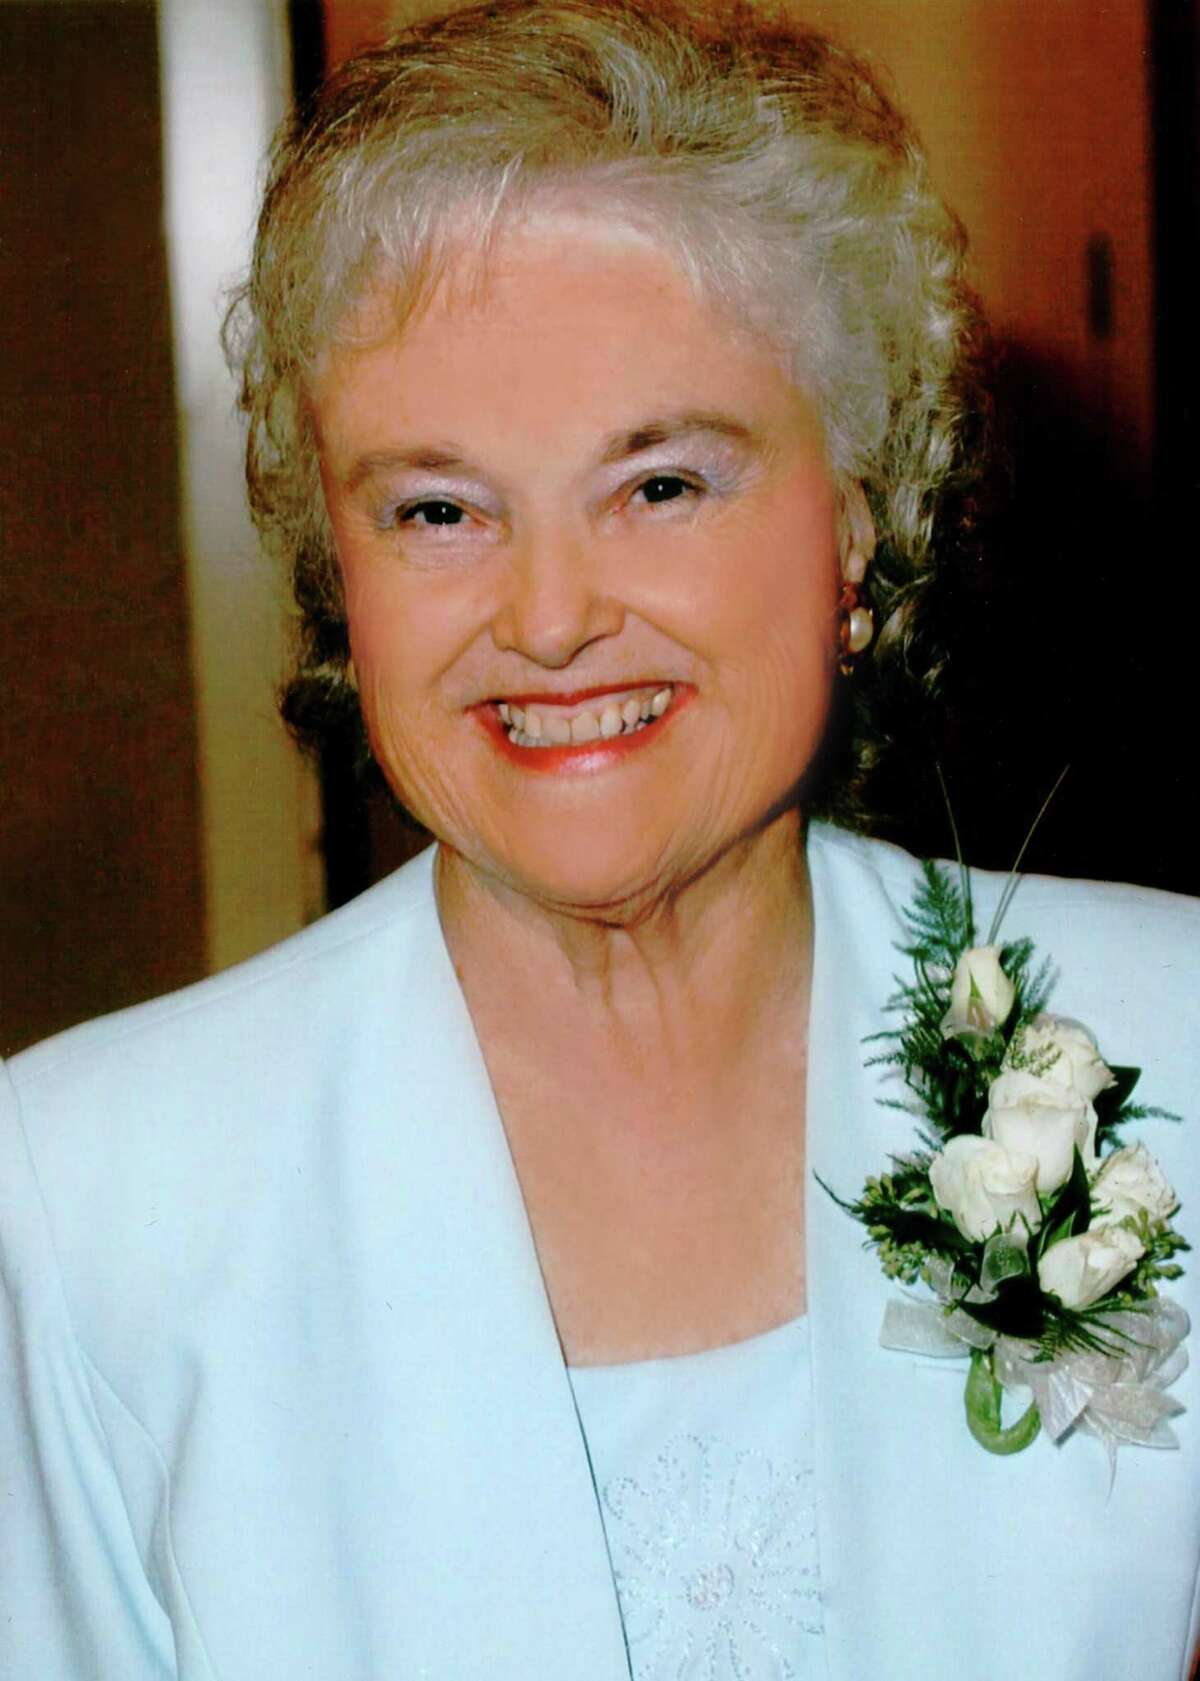 Louise McBee didn't seek to draw attention to her efforts over 57 years to help others in Deer Park, say friends and relatives remembering her after her death at age 88.